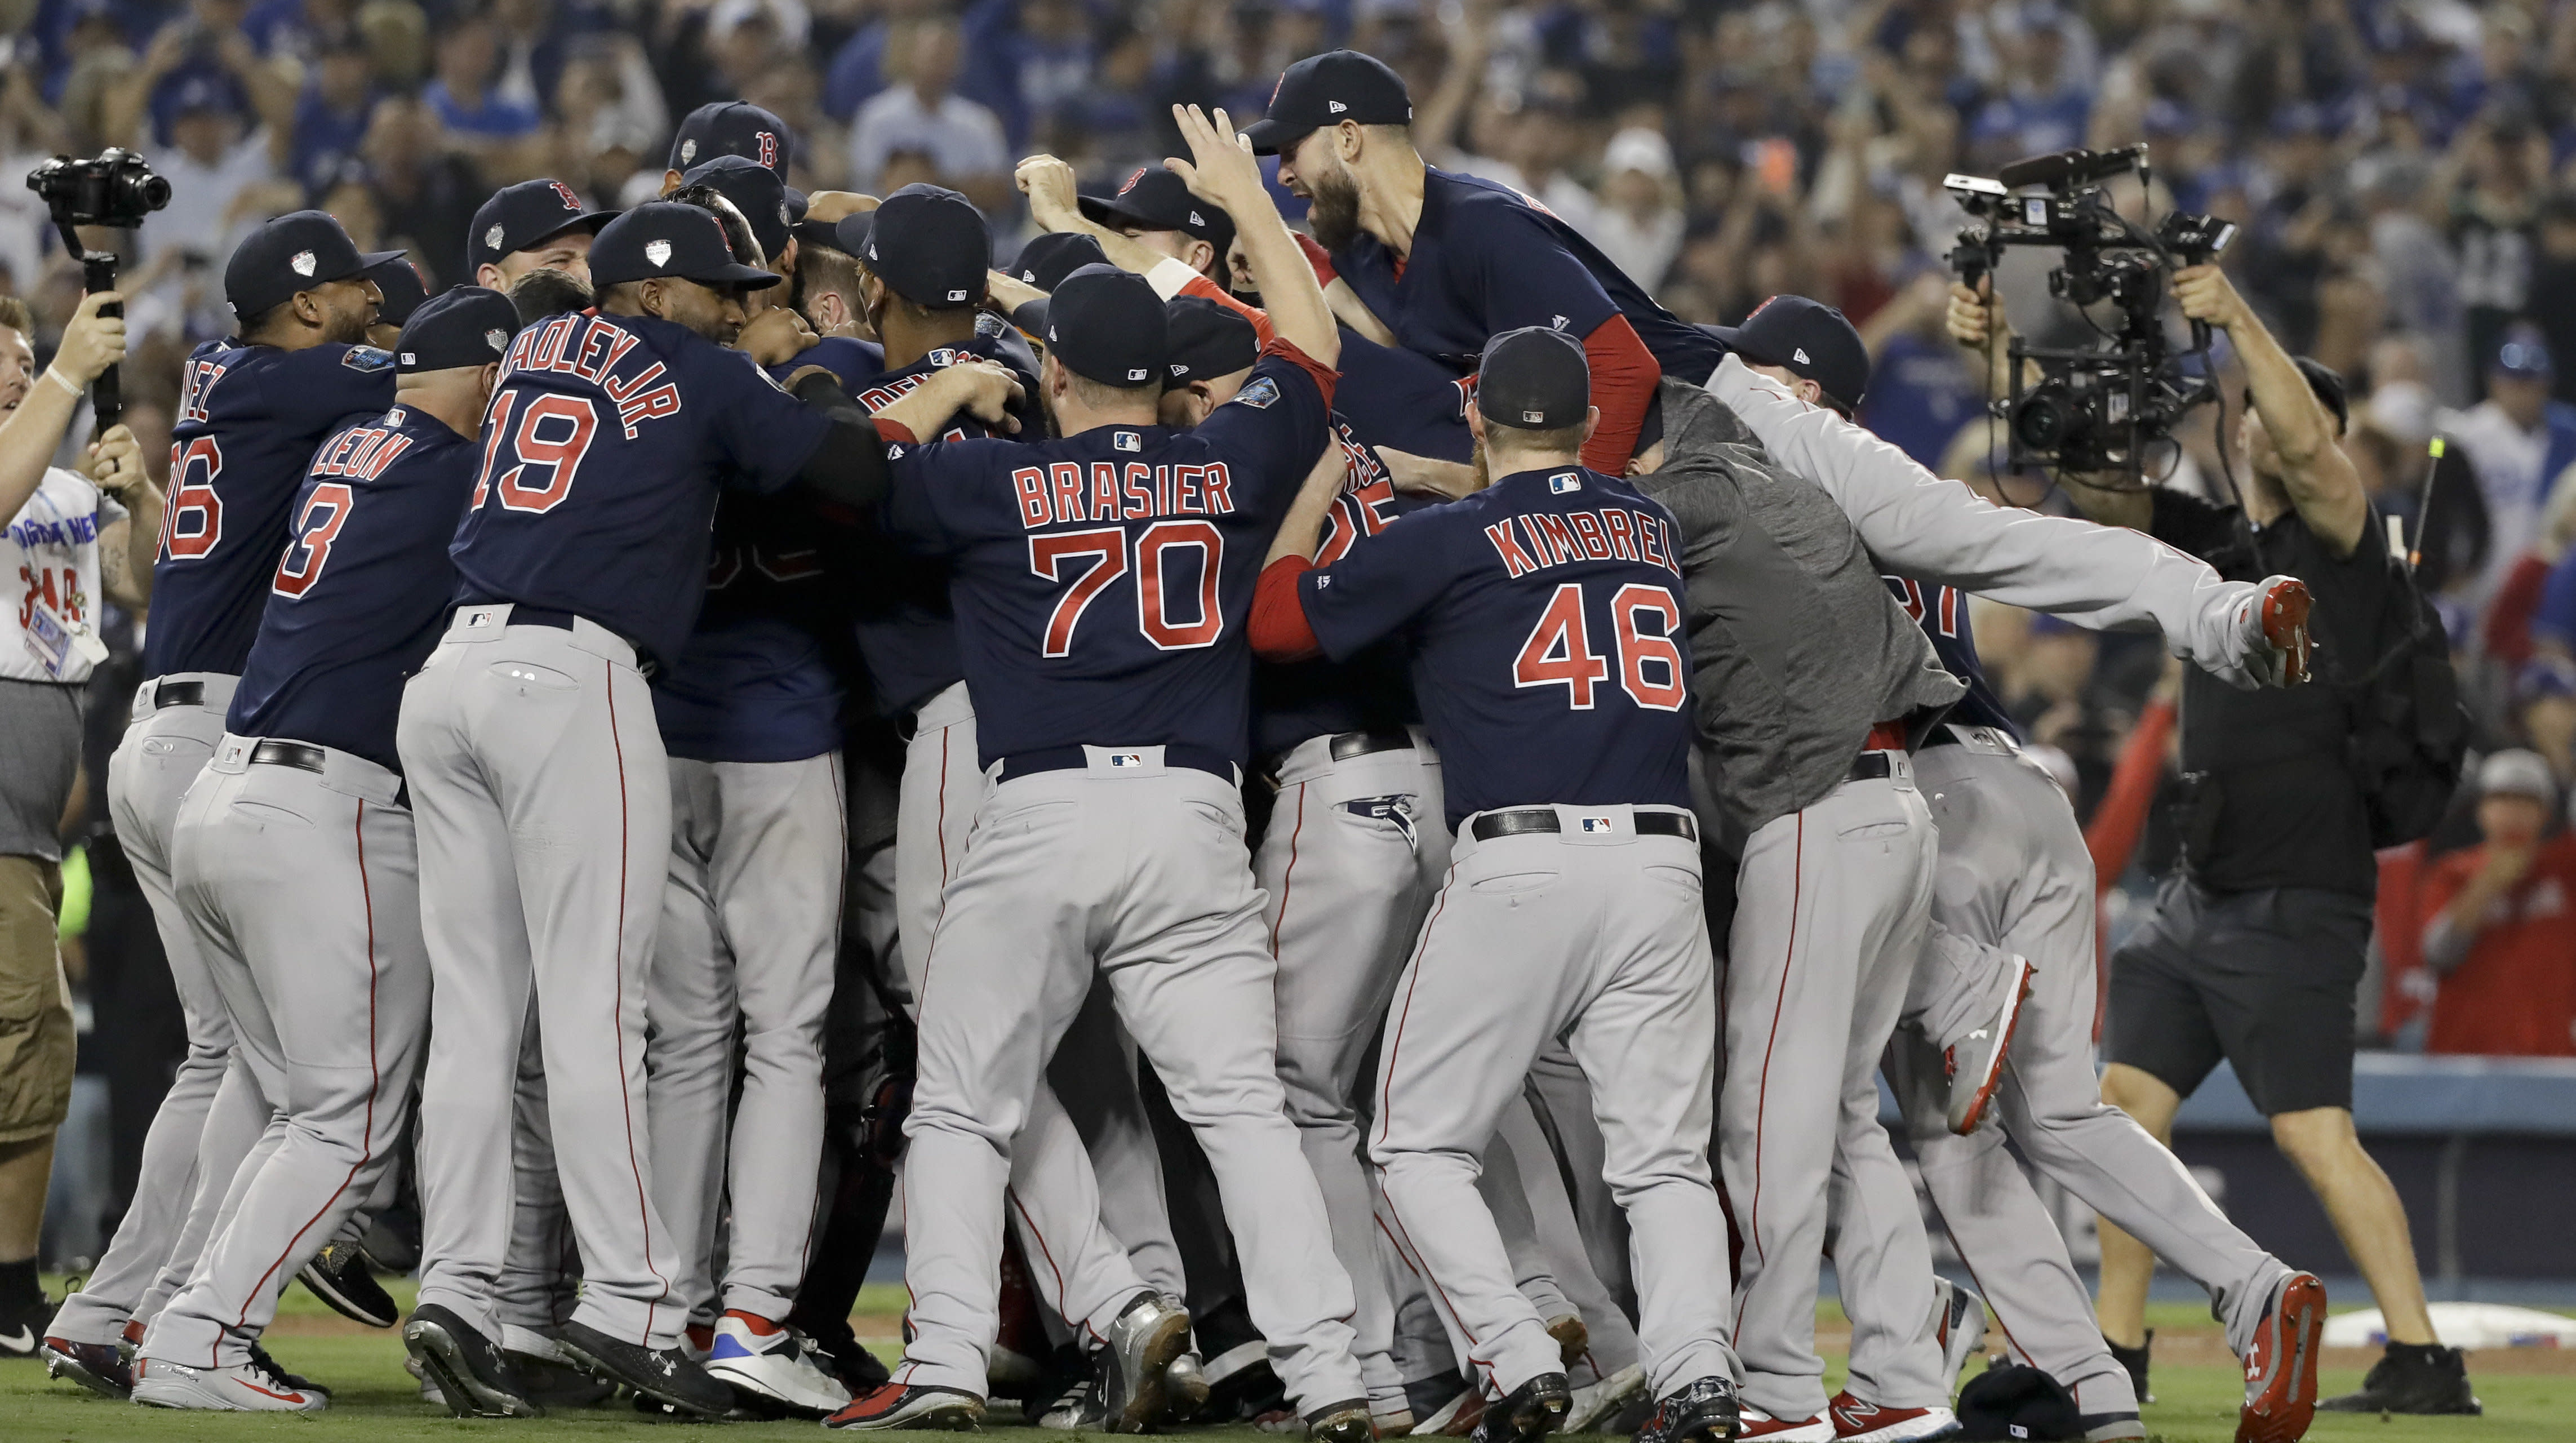 Red Sox Savagely Mock Yankees In World Series Locker Room Celebration